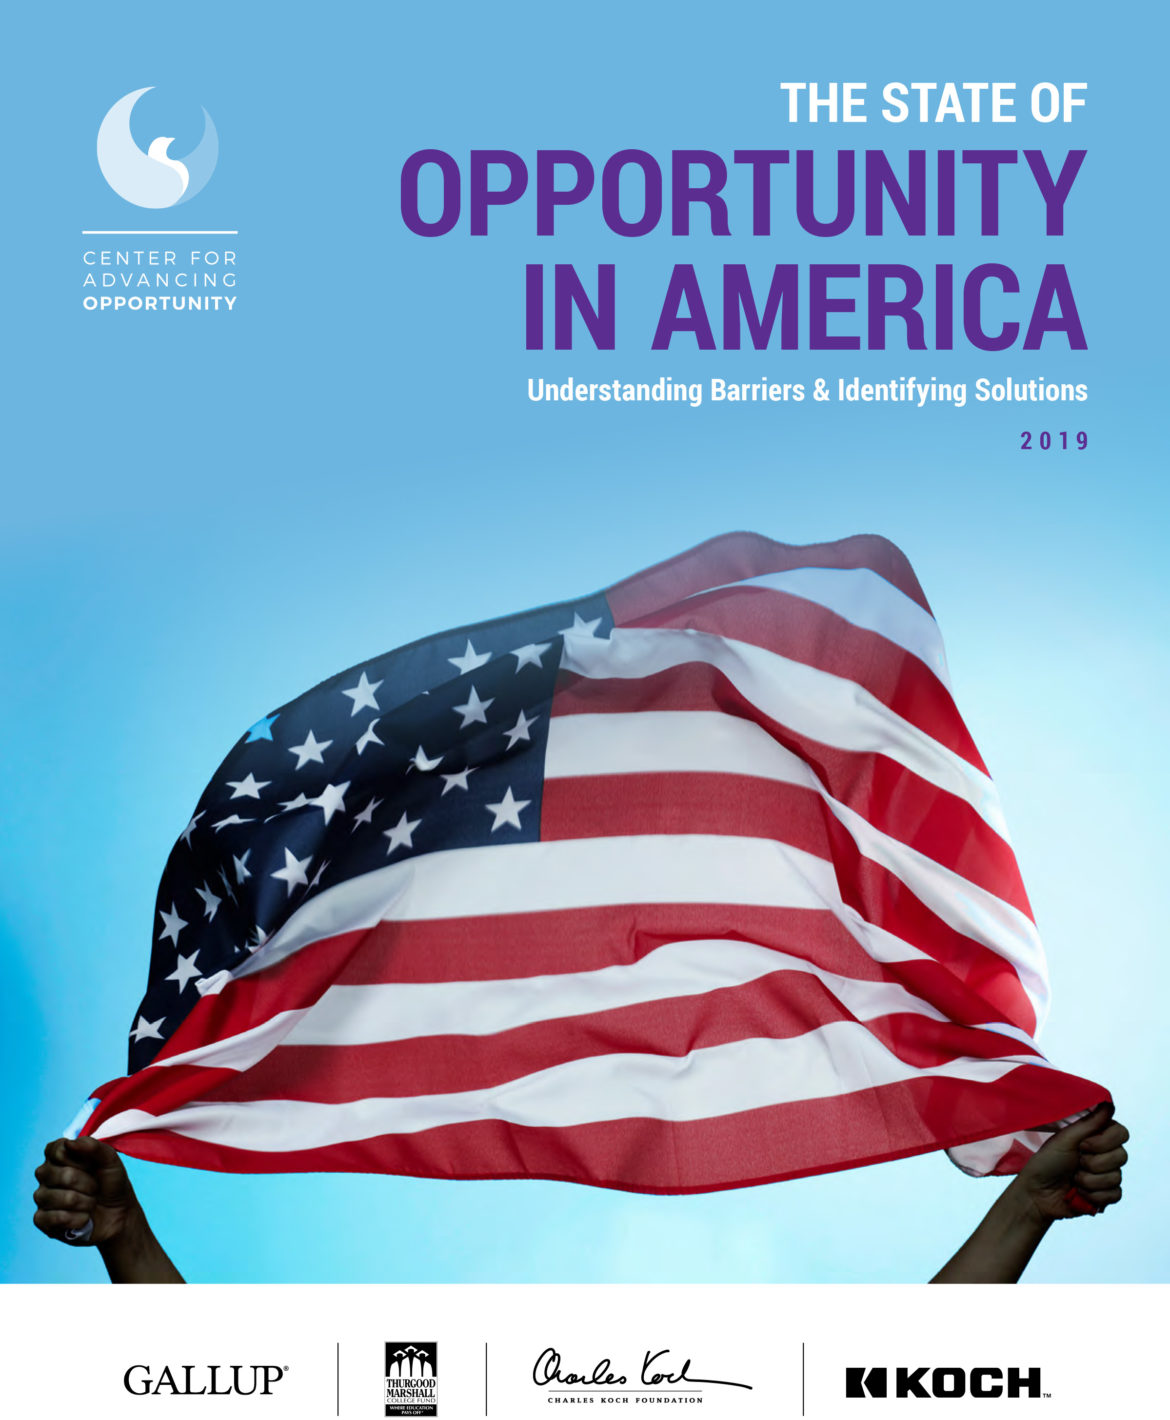 The State of Opportunity in America Report